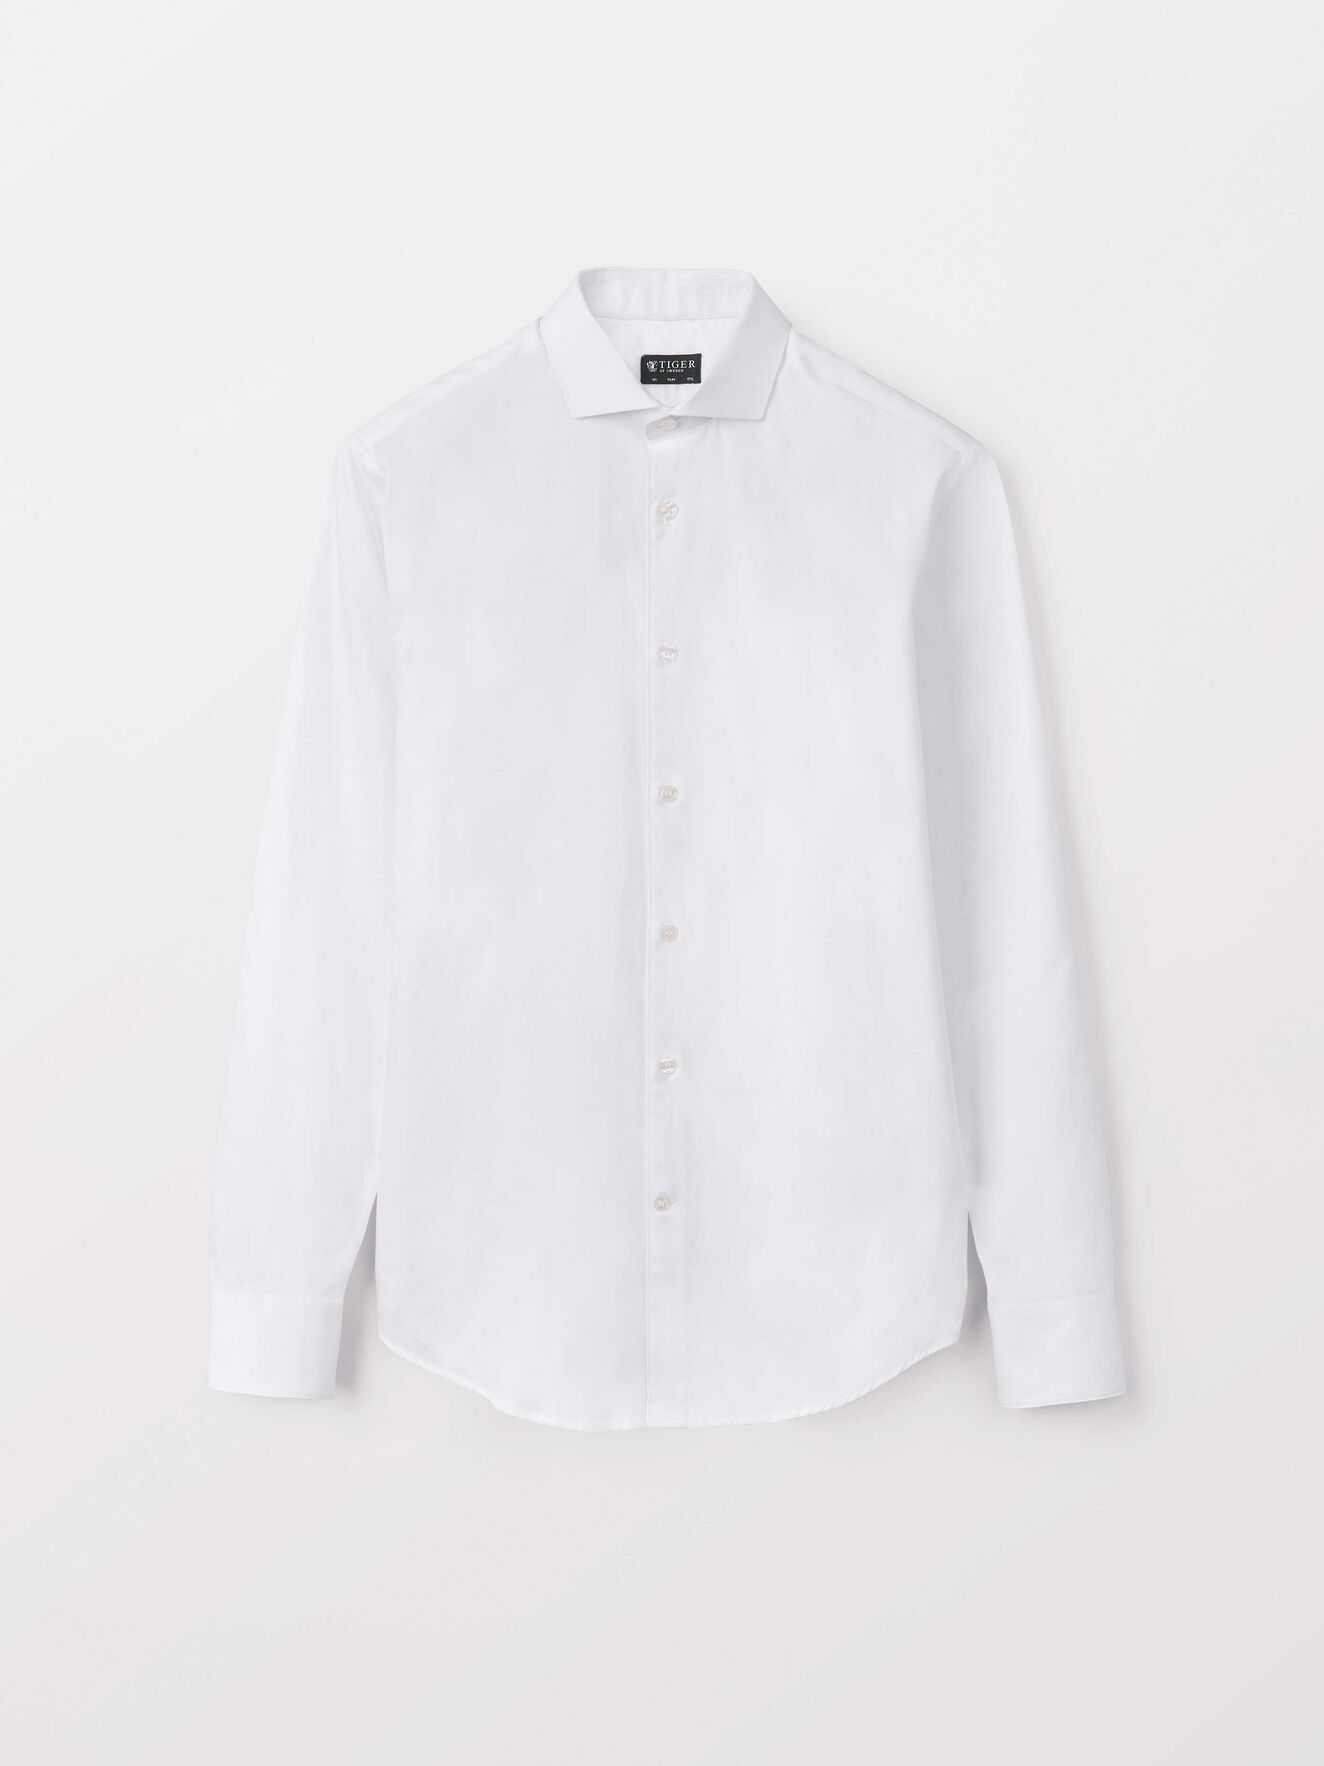 9c42fb387f3 ... Farrell 5 Shirt in Pure white from Tiger of Sweden ...